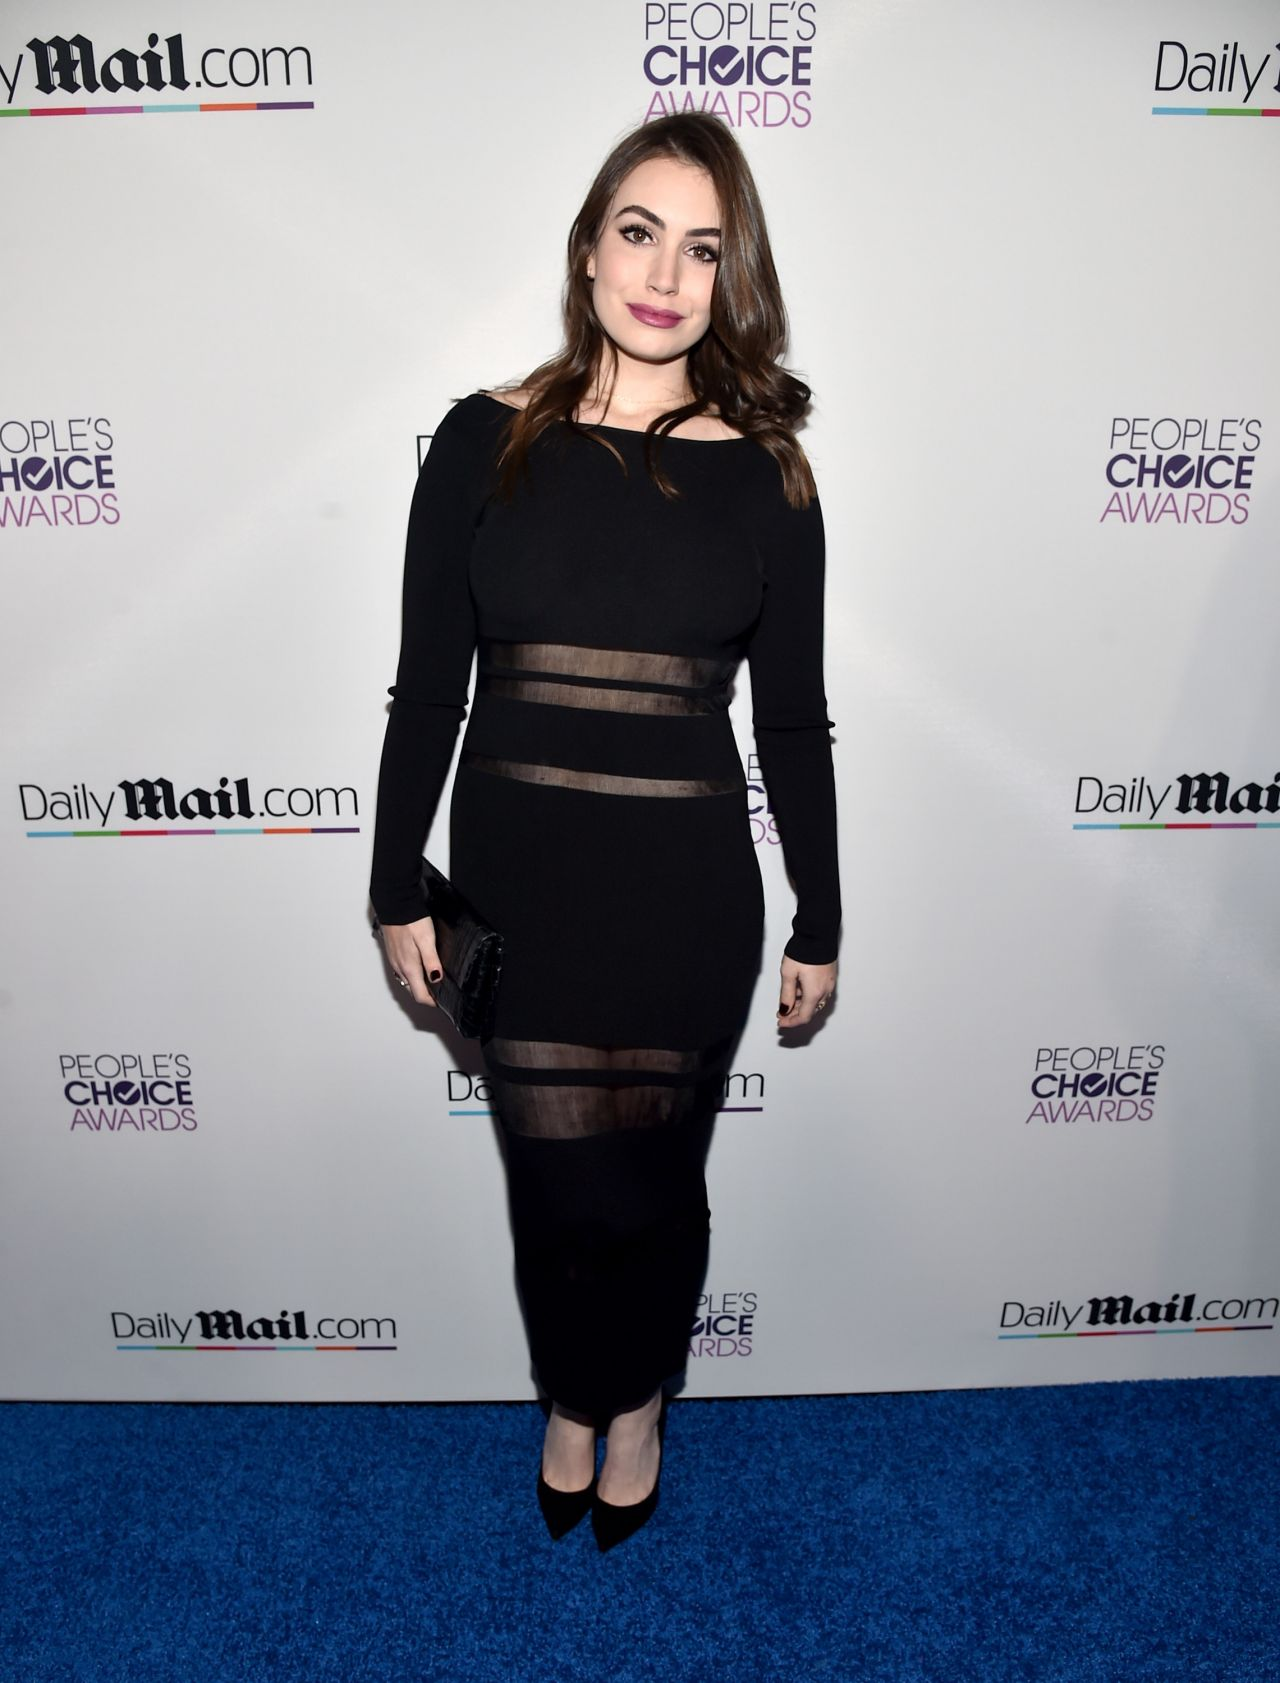 sophie-simmons-dailymail-s-2016-people-s-choice-awards-after-party-in-los-angeles-2